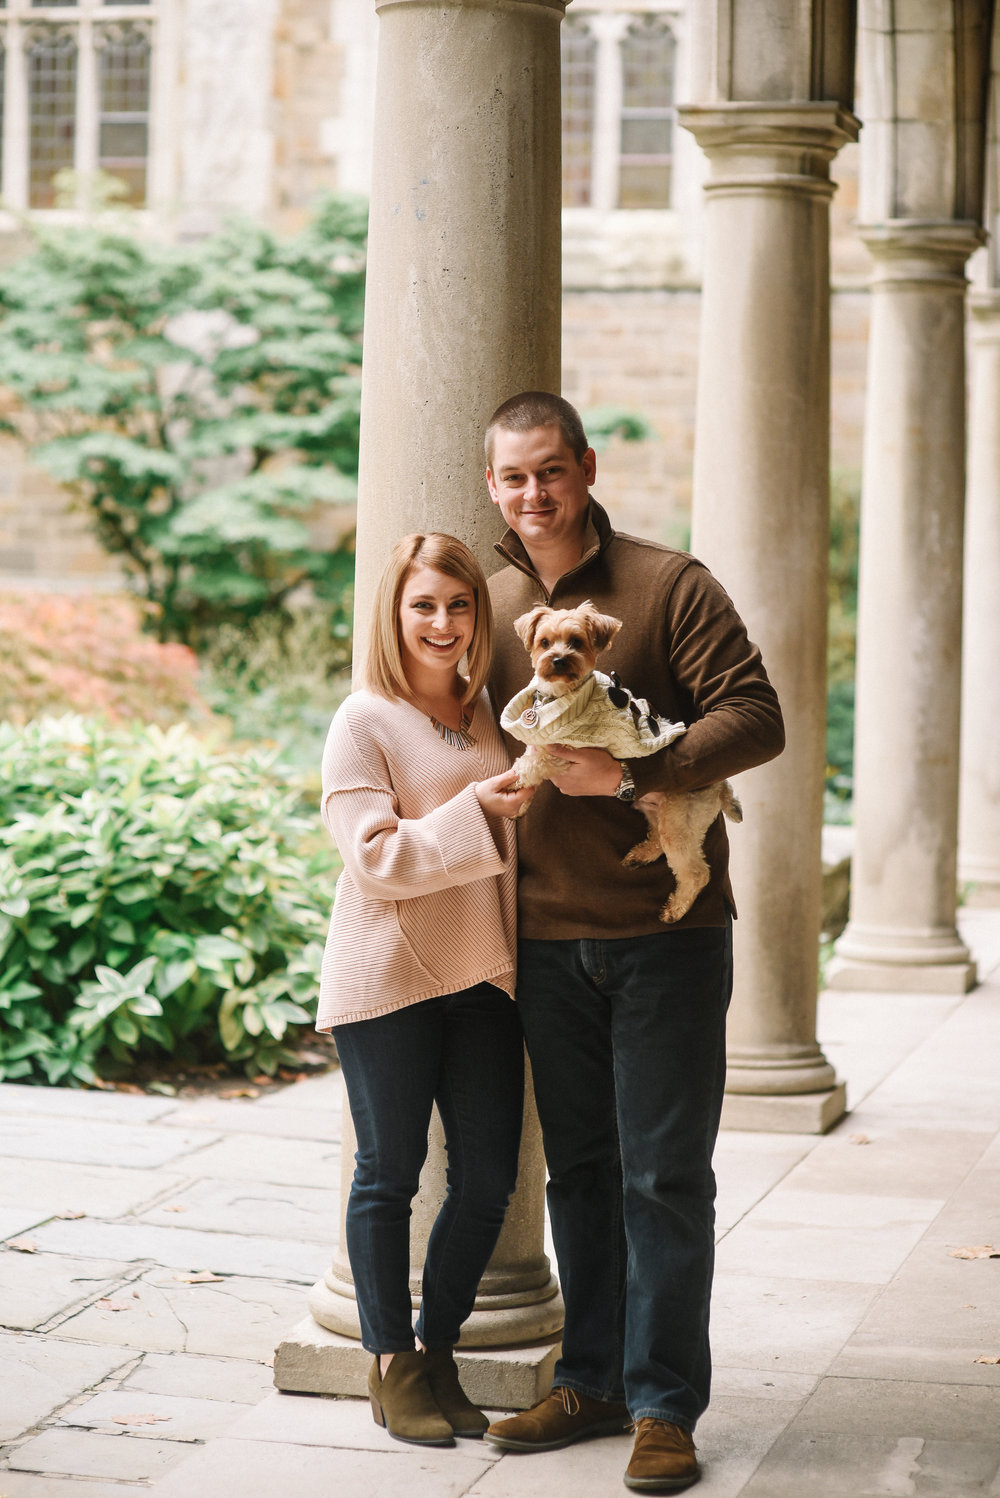 Law_Quad_Ann_Arbor_Engagement_Photos-2.jpg